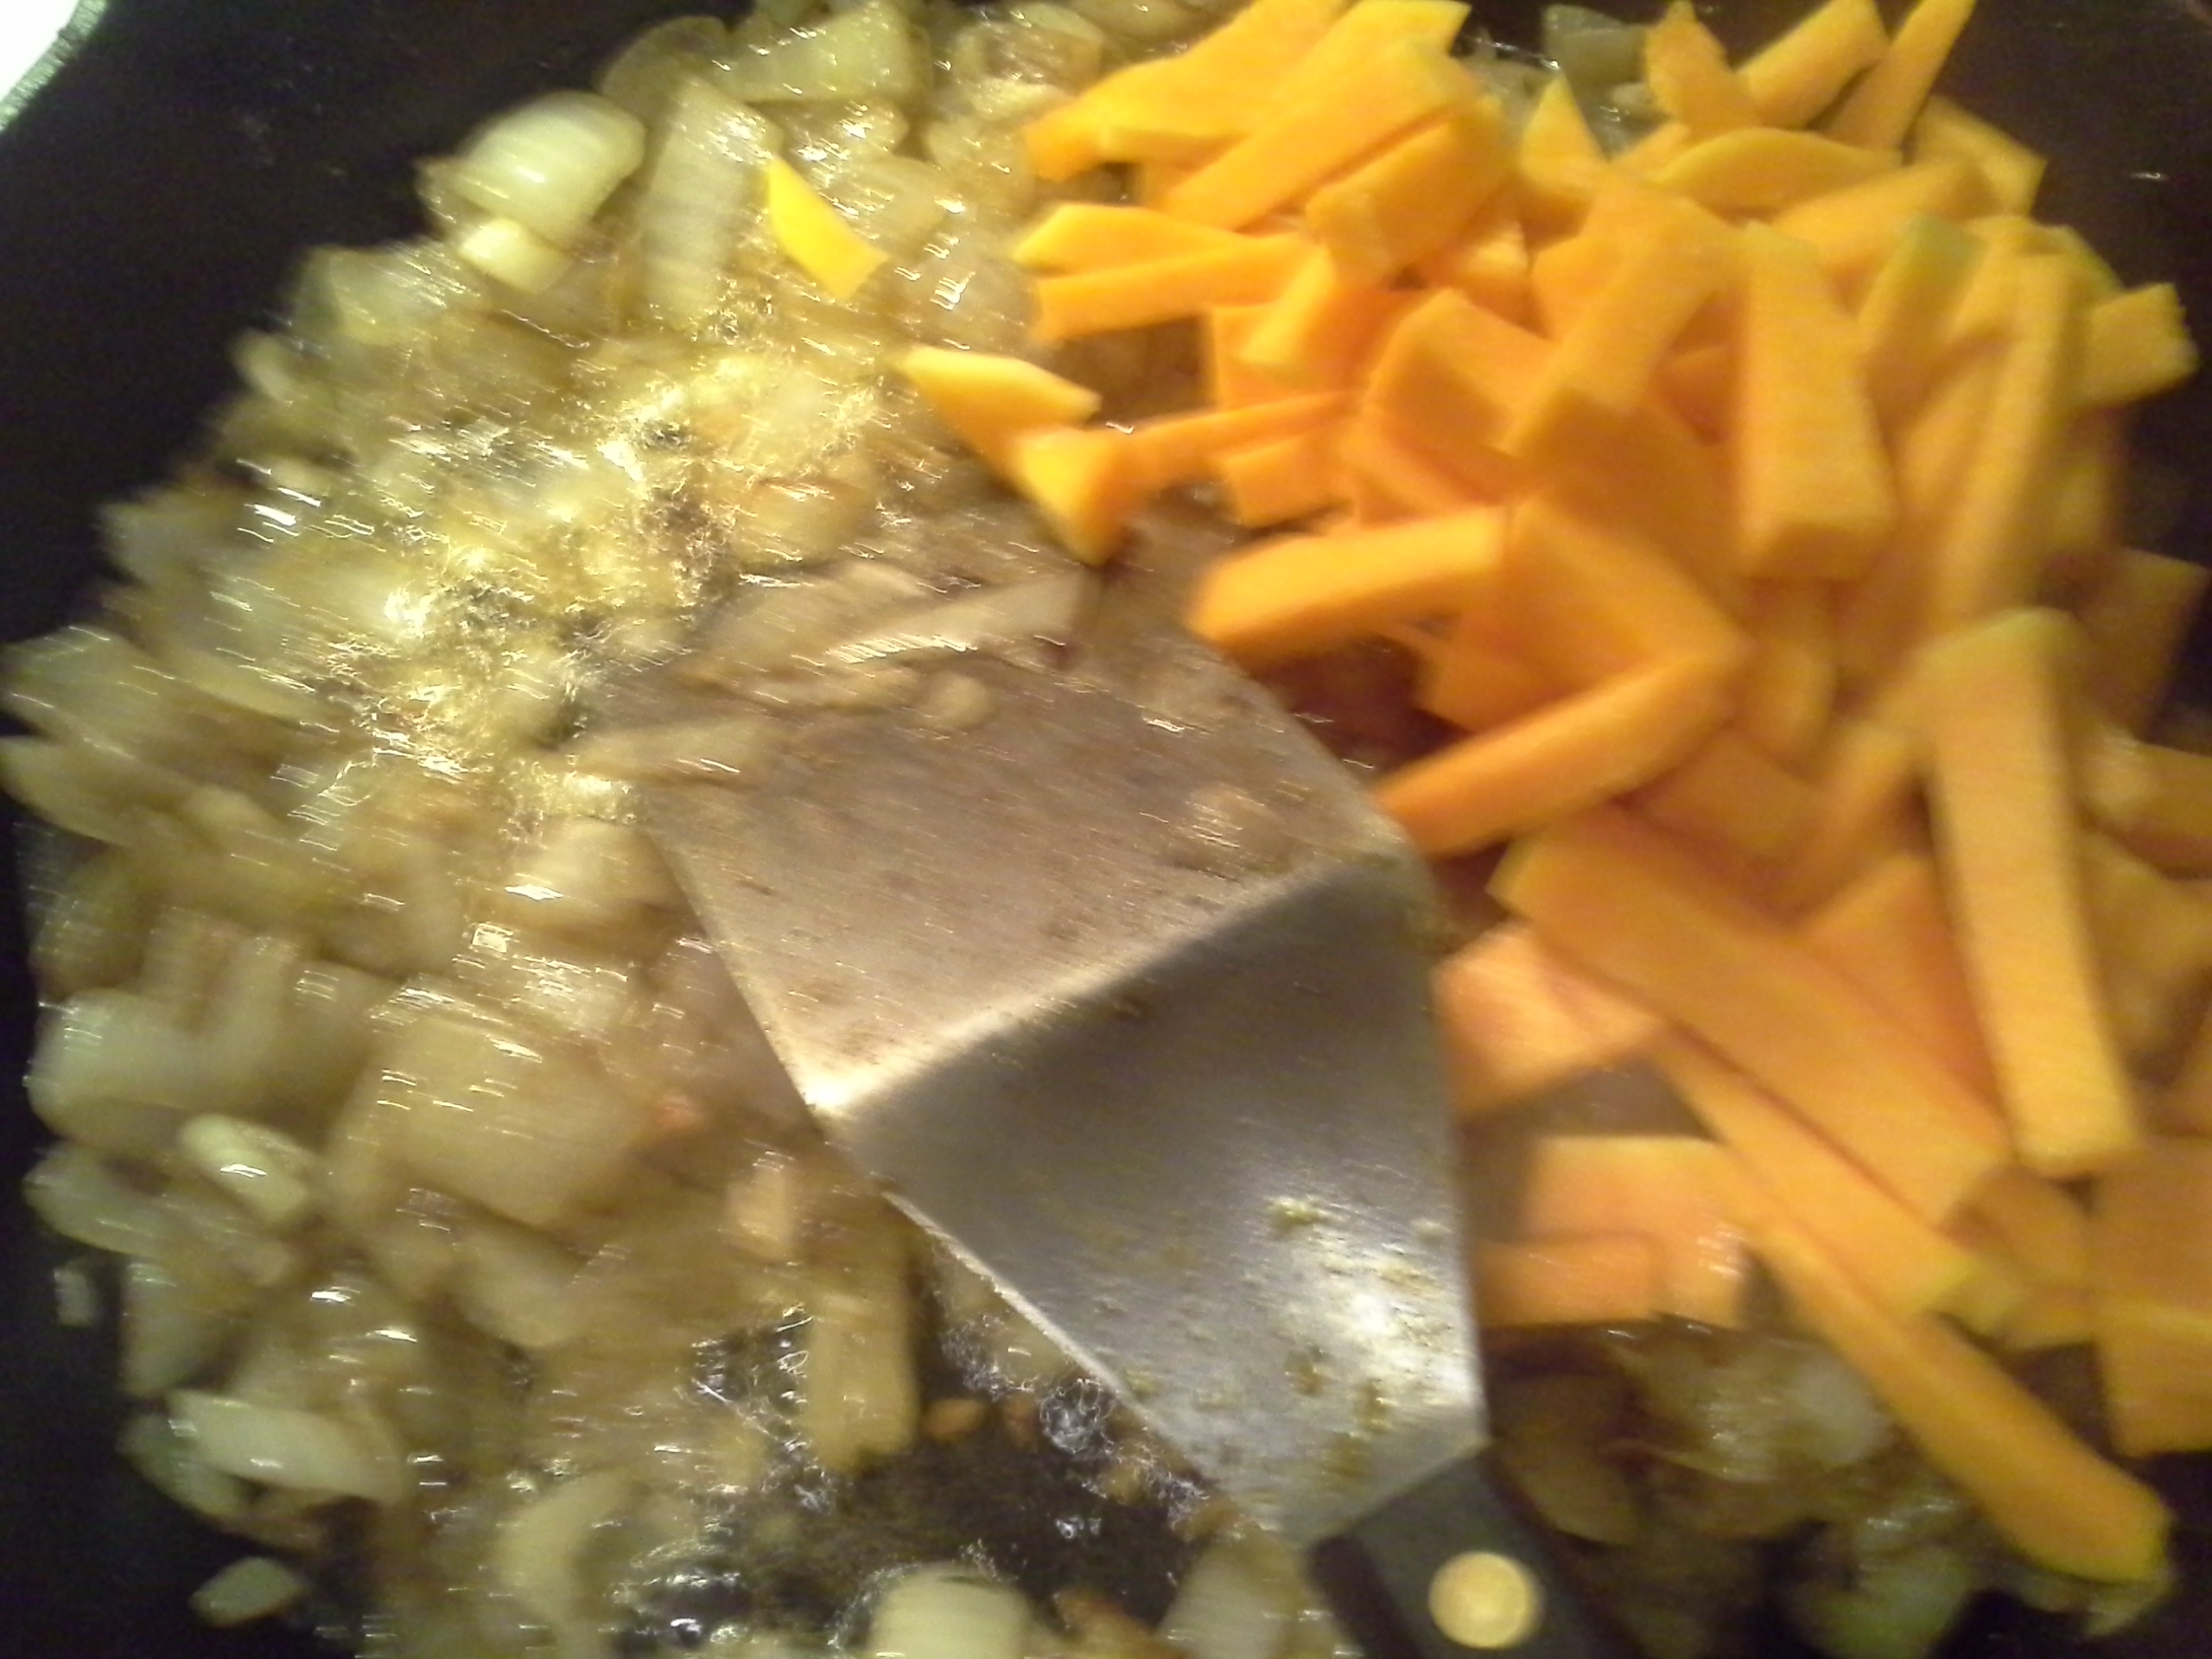 Add the squash to the onions and garlic, which are already beginning to brown